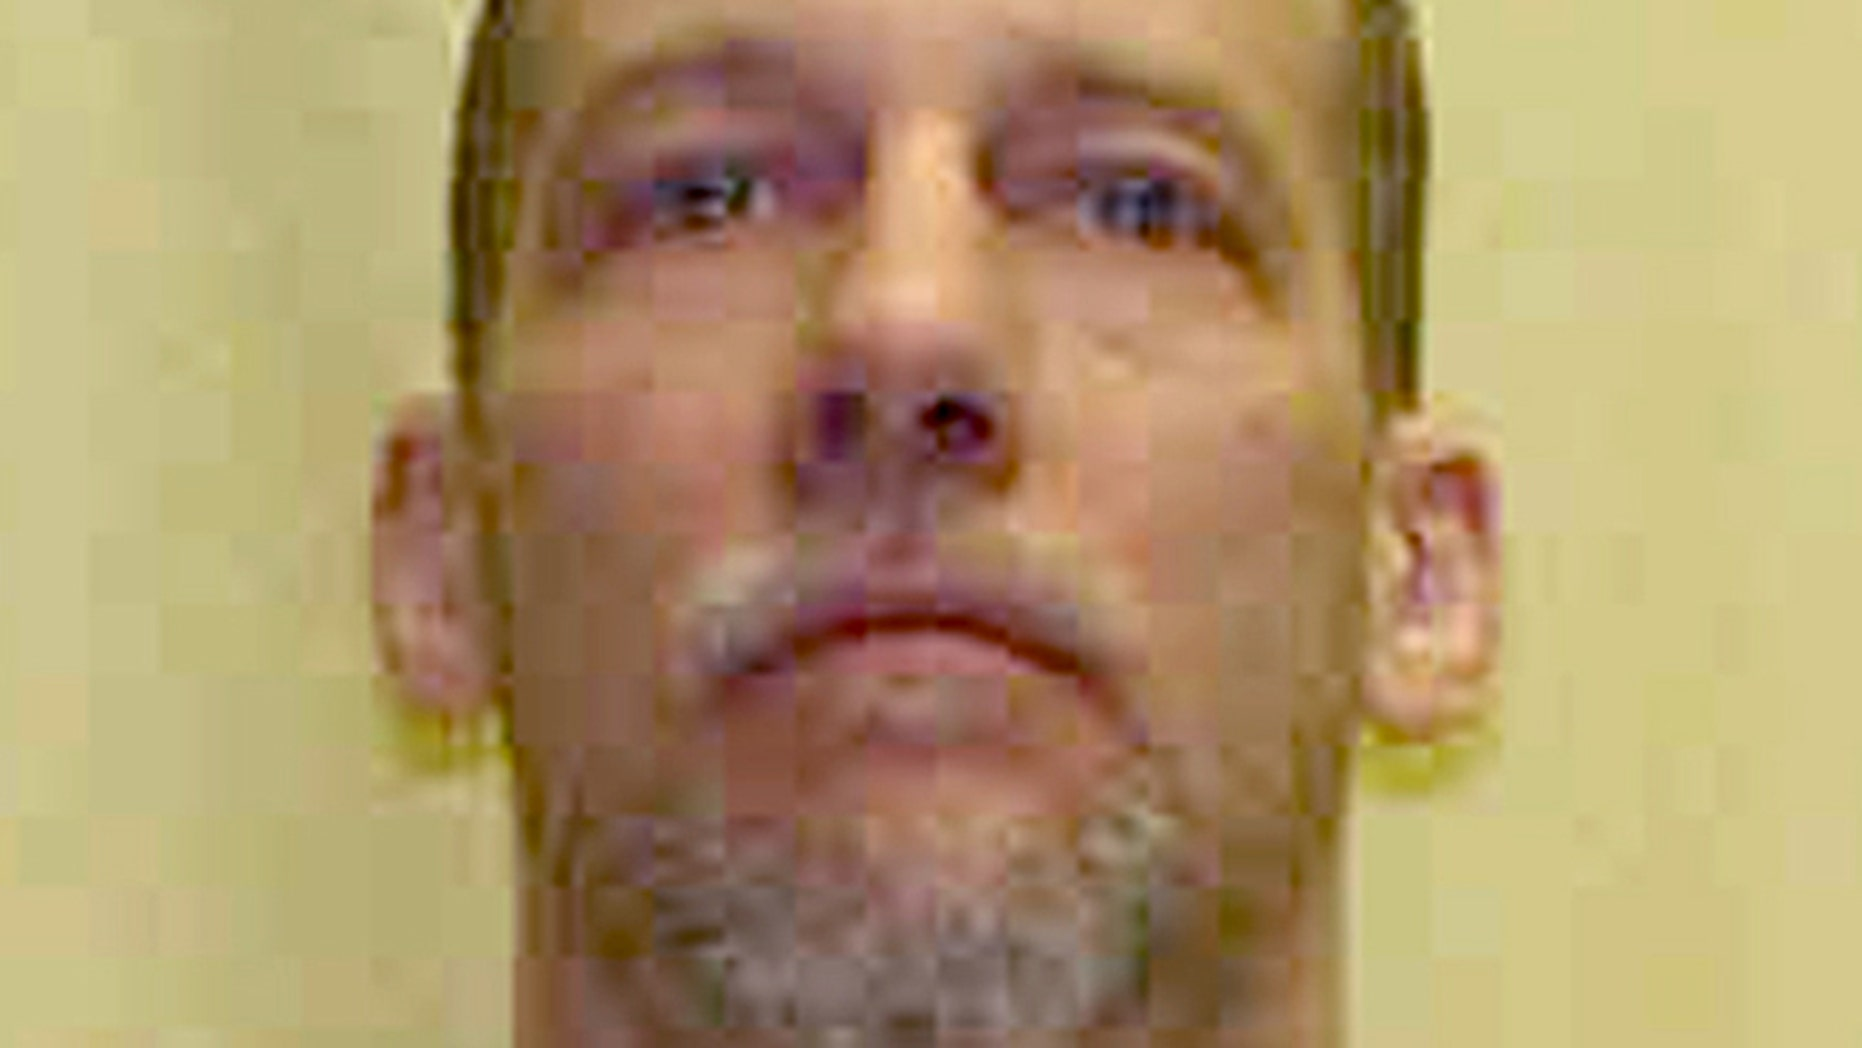 Mark Wiles was convicted of killing Mark Klima, 15, in Portage County, Ohio, in 1985.